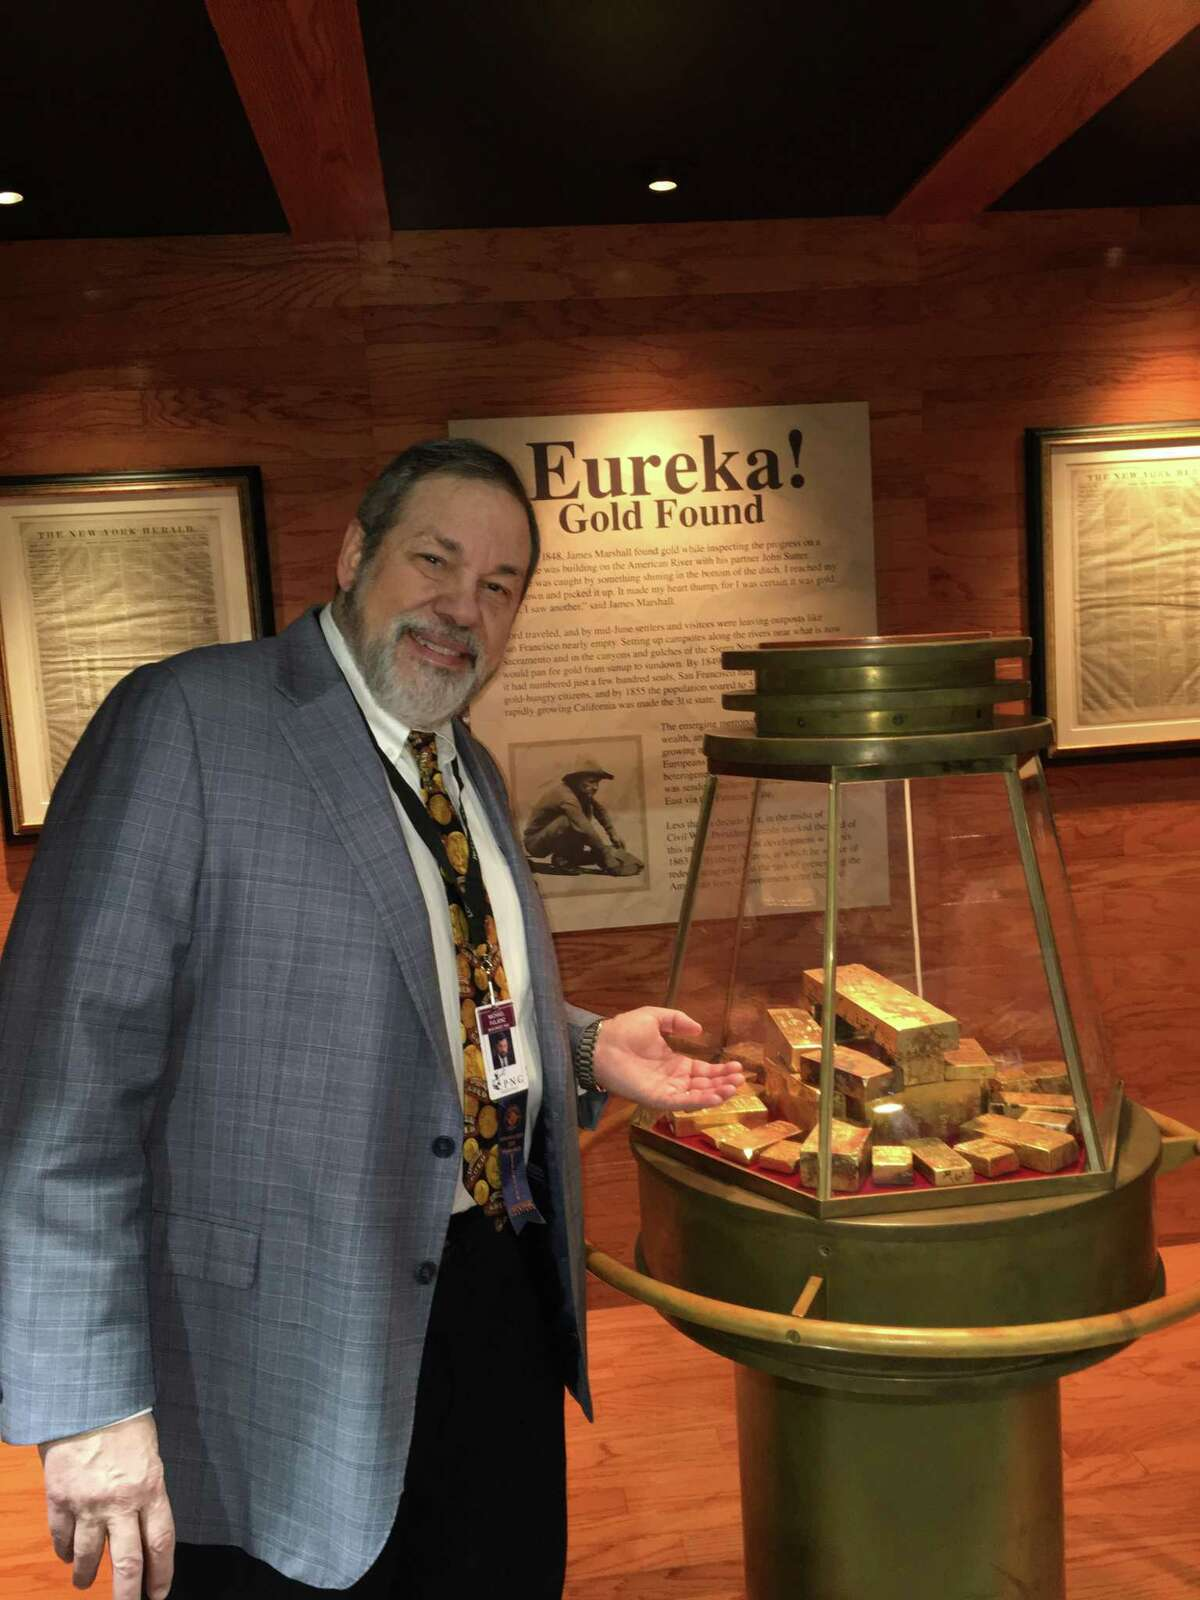 """Michael Fuljenz, president of Universal Coin & Bullion in Beaumont, with some of the historic California Gold Rush assayers' ingots recovered in 2014 from the fabled """"Ship of Gold,"""" theSS Central America, which sank in 1857. Photo credit: Donn Pearlman"""